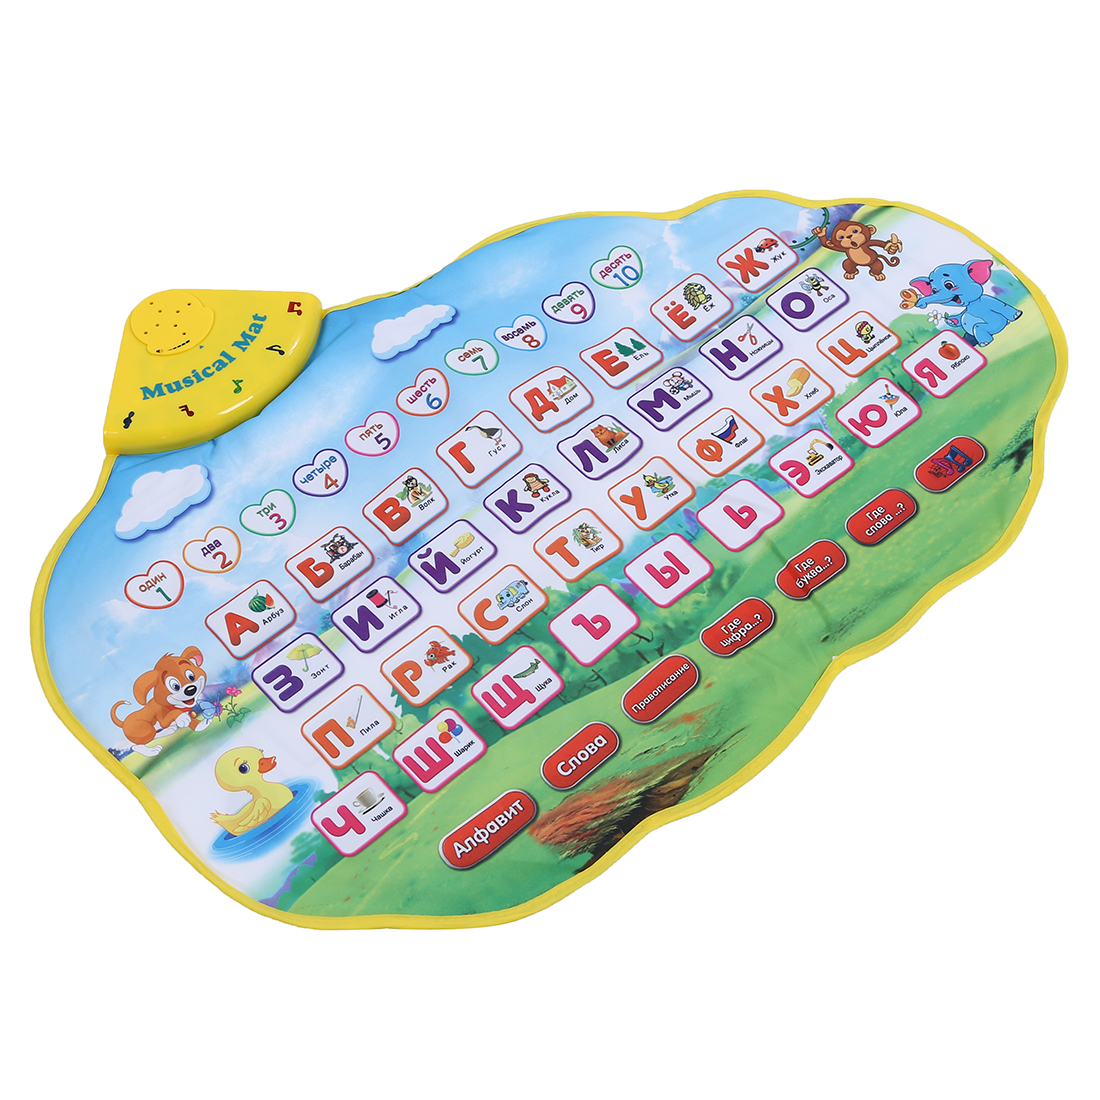 Children-Learning-Mat-Russian-Language-Toy-Funny-Alphabet-Mat-Learning-Education-Phonetic-Sound-Carpet-ABC-Toy-2